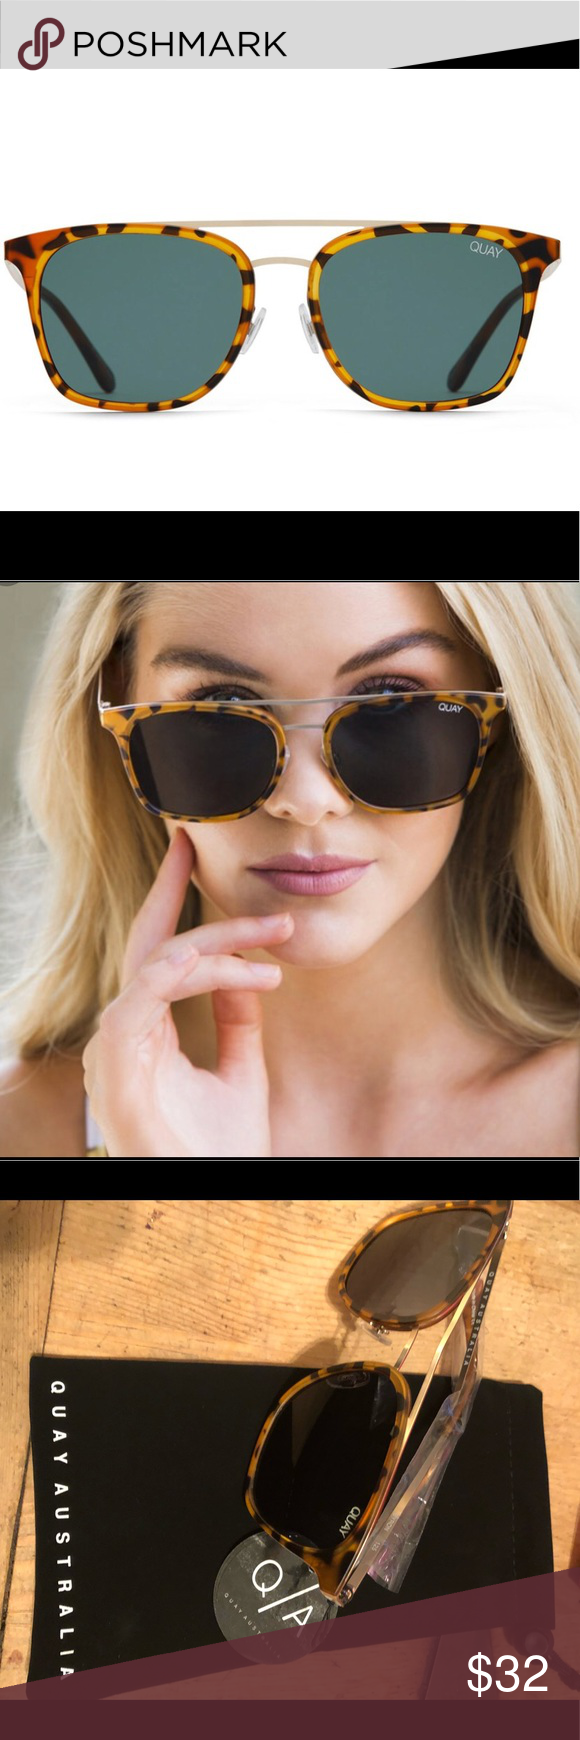 f7a0839a96 Quay Australia Byron Pink Tortoise Sunglasses A new kind of master class. BYRON  combines the